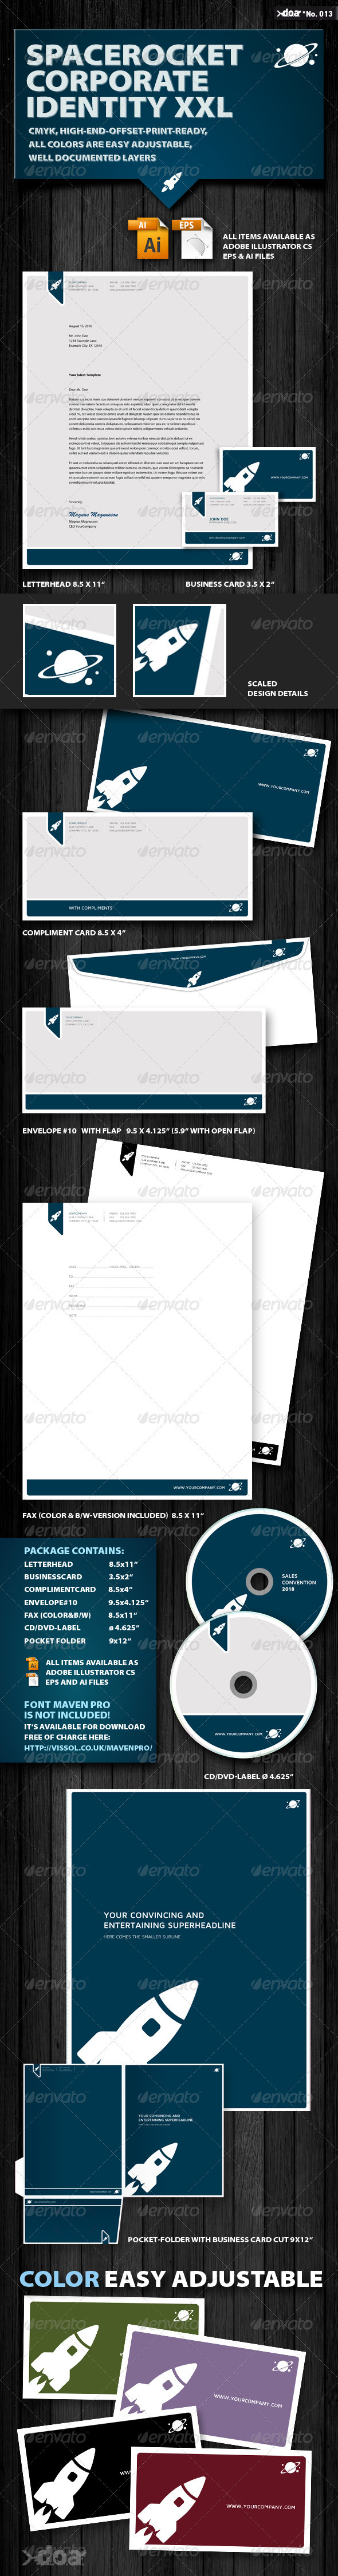 GraphicRiver Space Rocket Corporate Identity XXL 340739